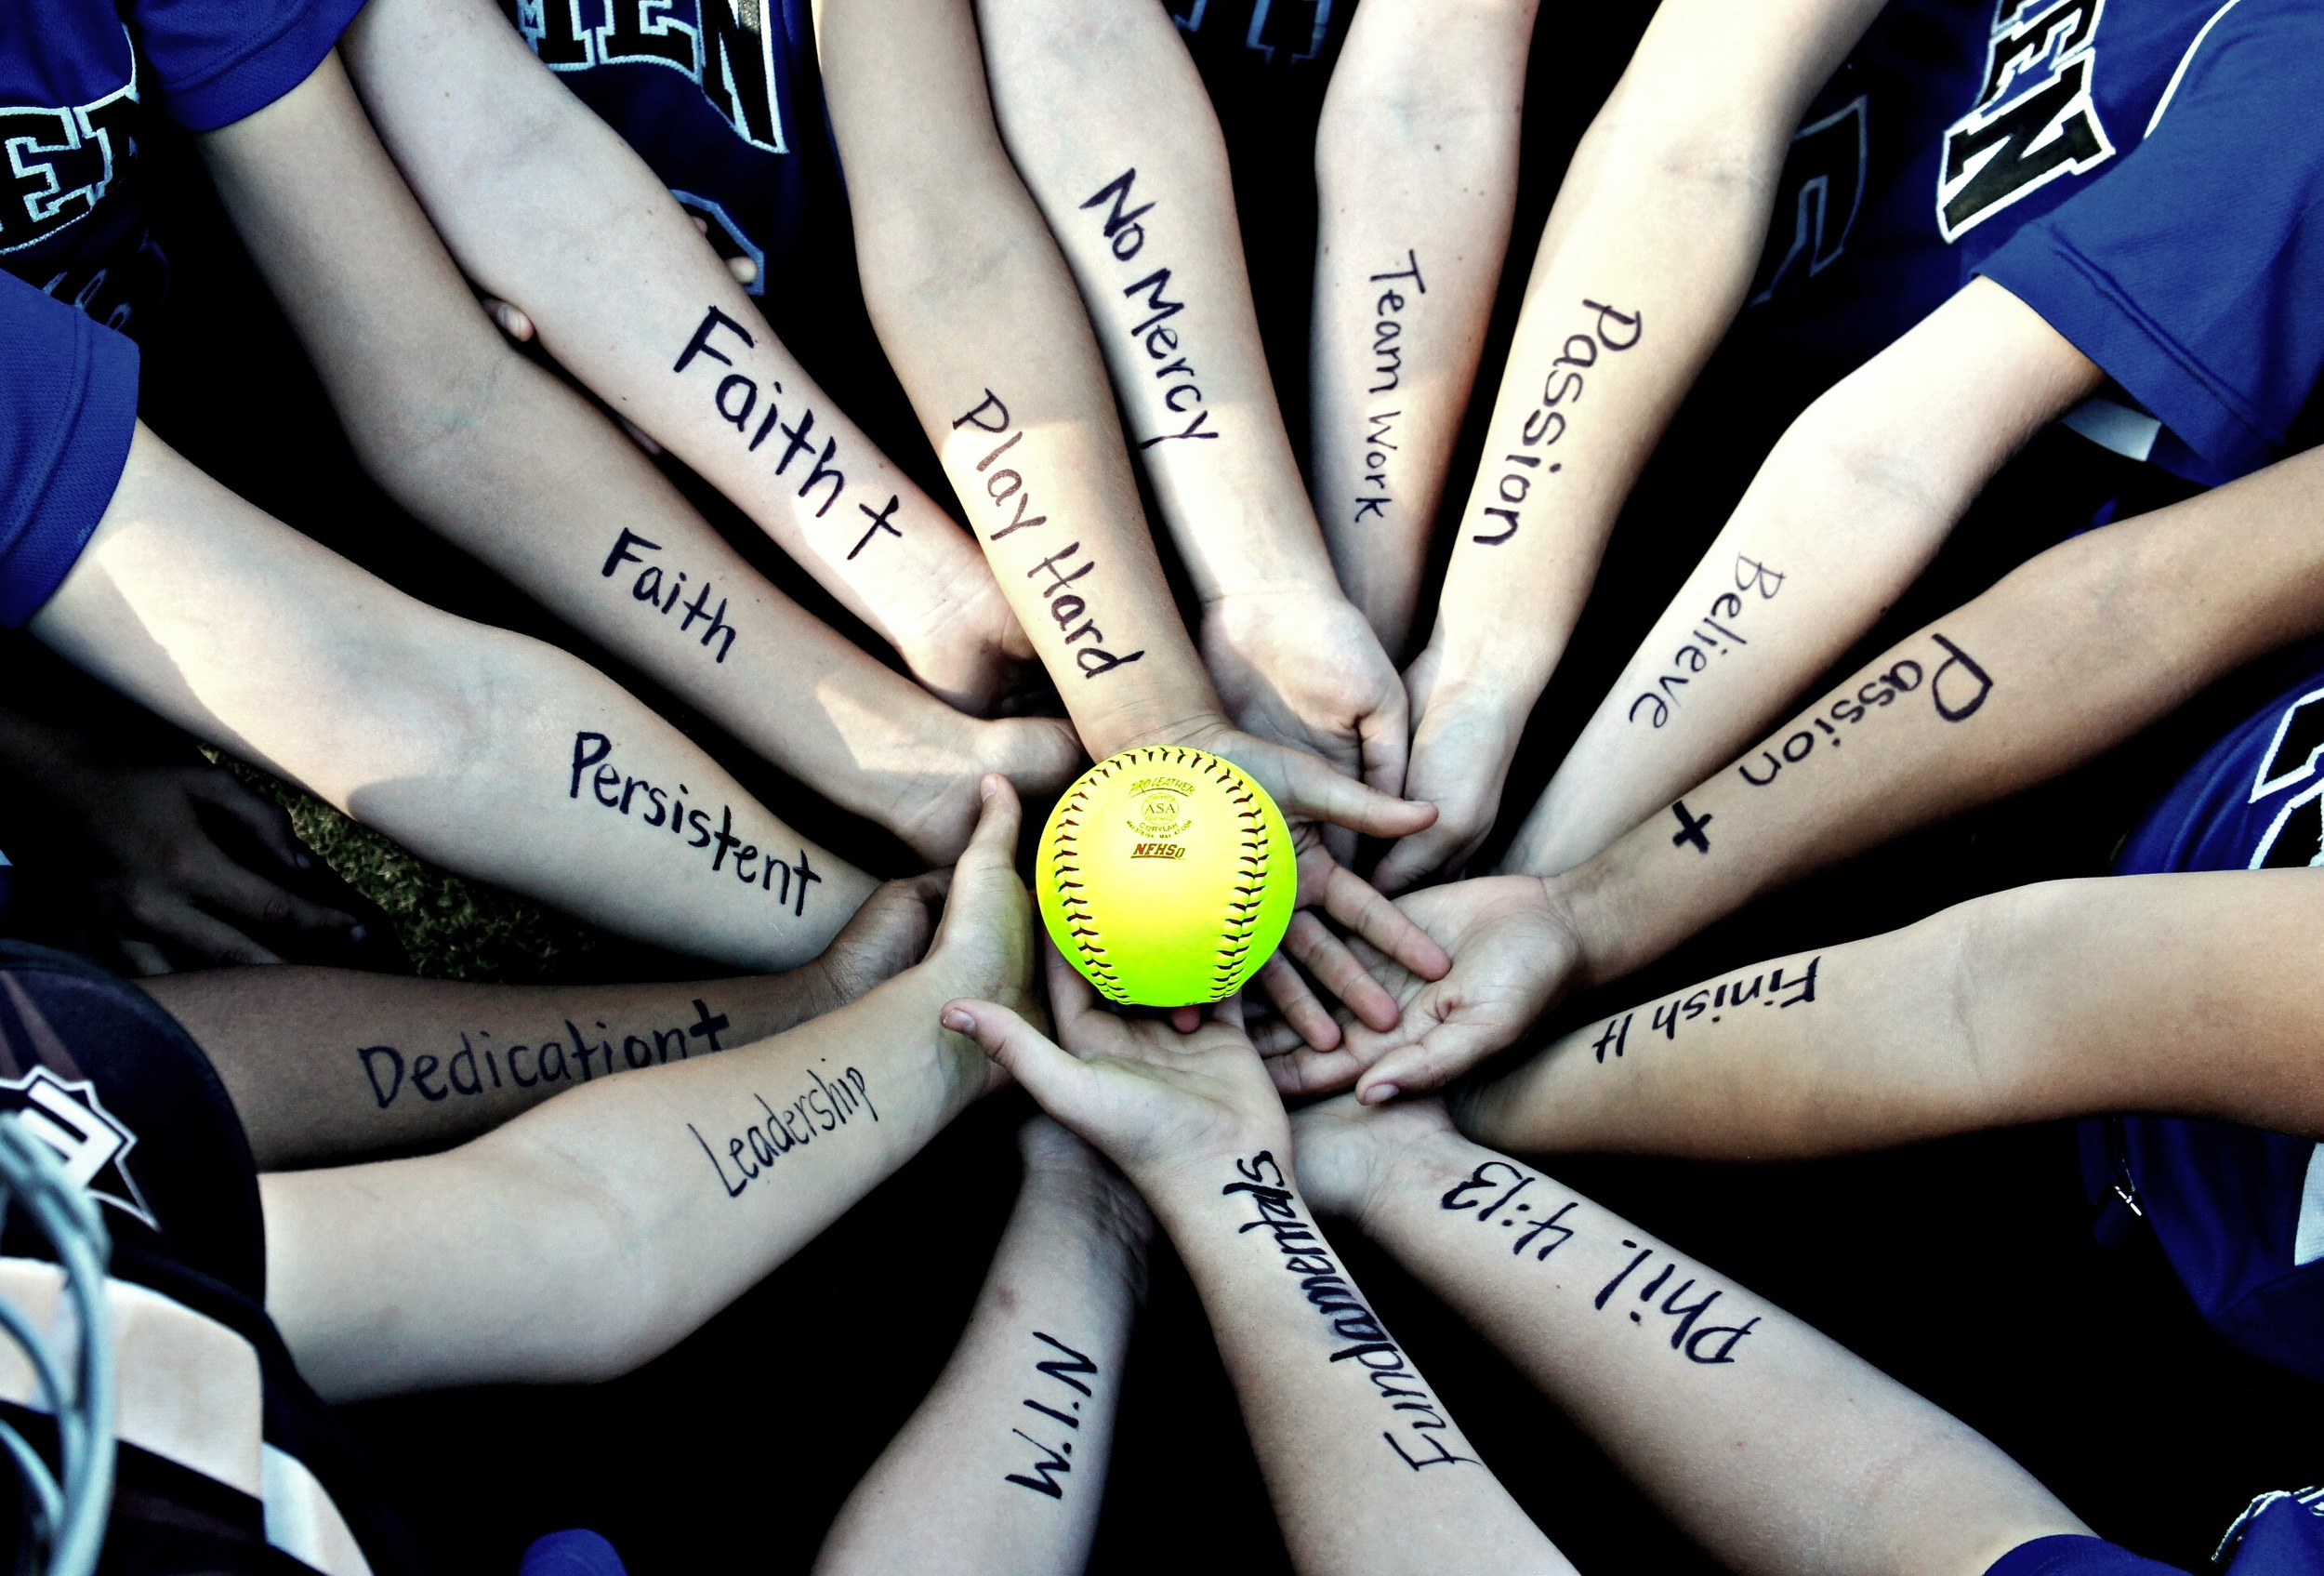 Found at:   http://www.quoteslike.com/quotes-about-softball-teamwork-quotes/